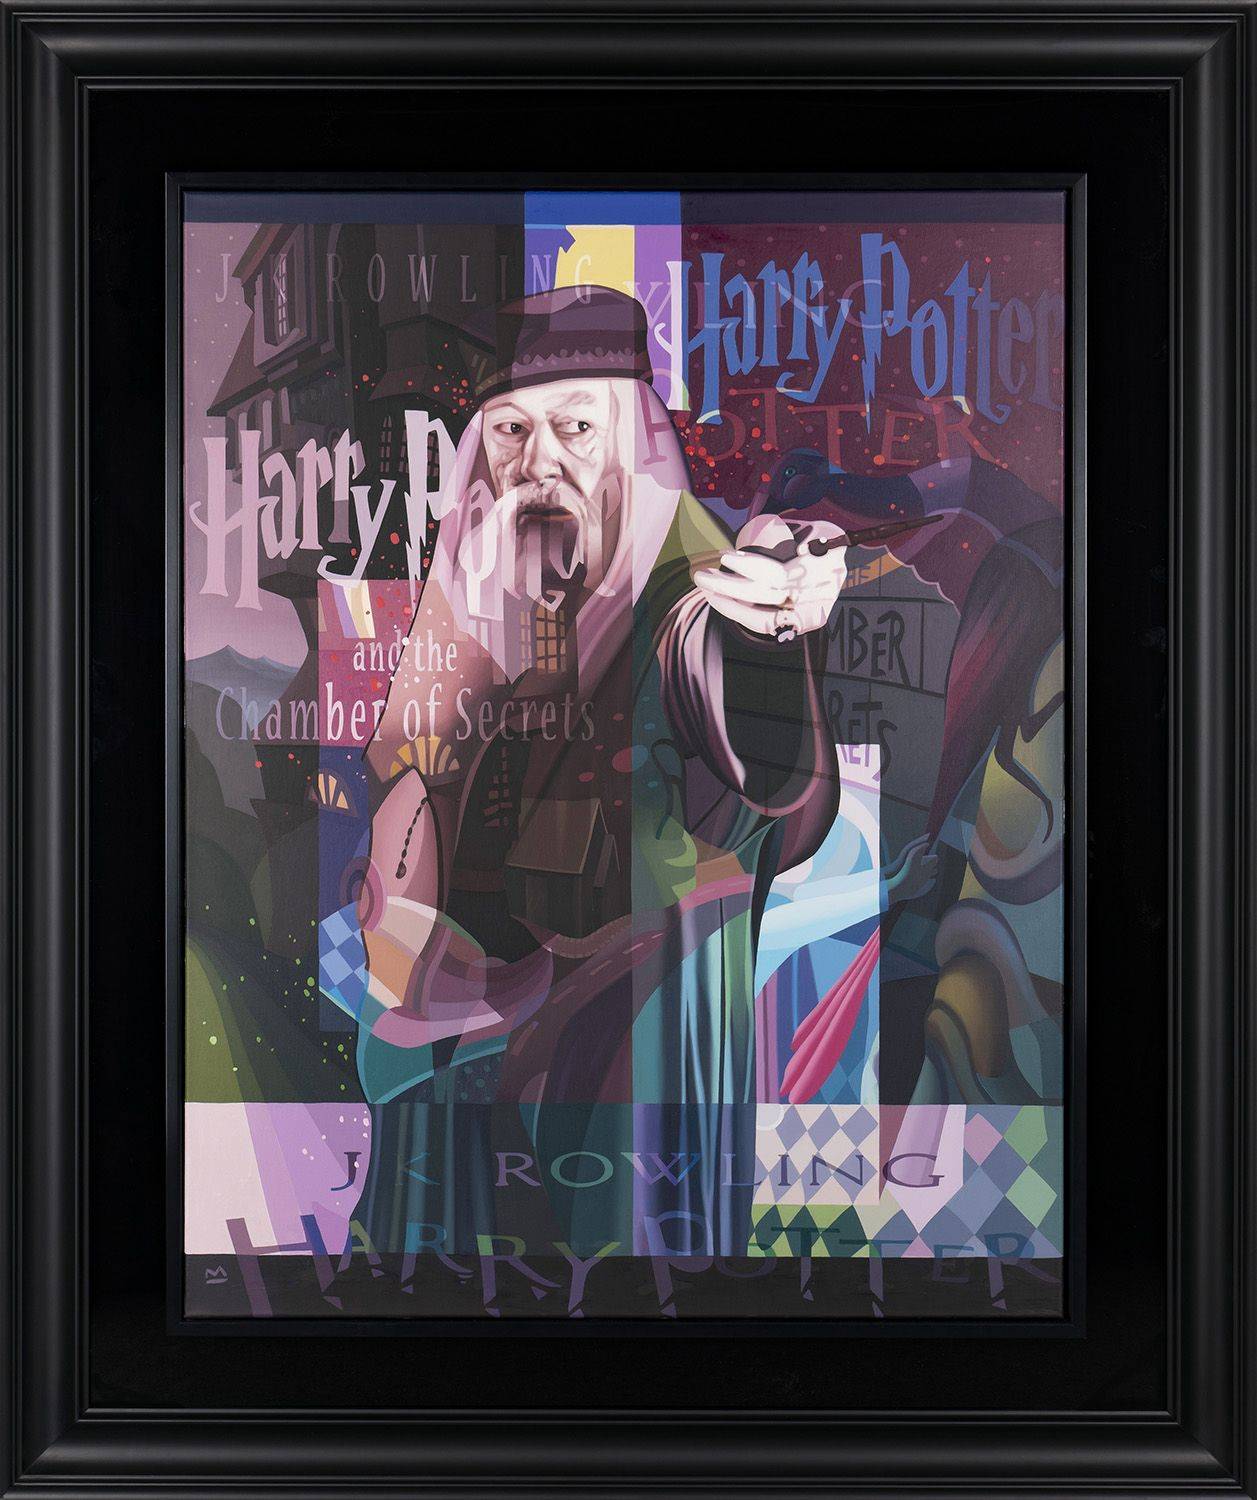 """Professor Dumbledore takes center stage in this painting, called """"The Hand of Wisdom."""" It's an appropriate name considering Dumbledore's character throughout the series."""